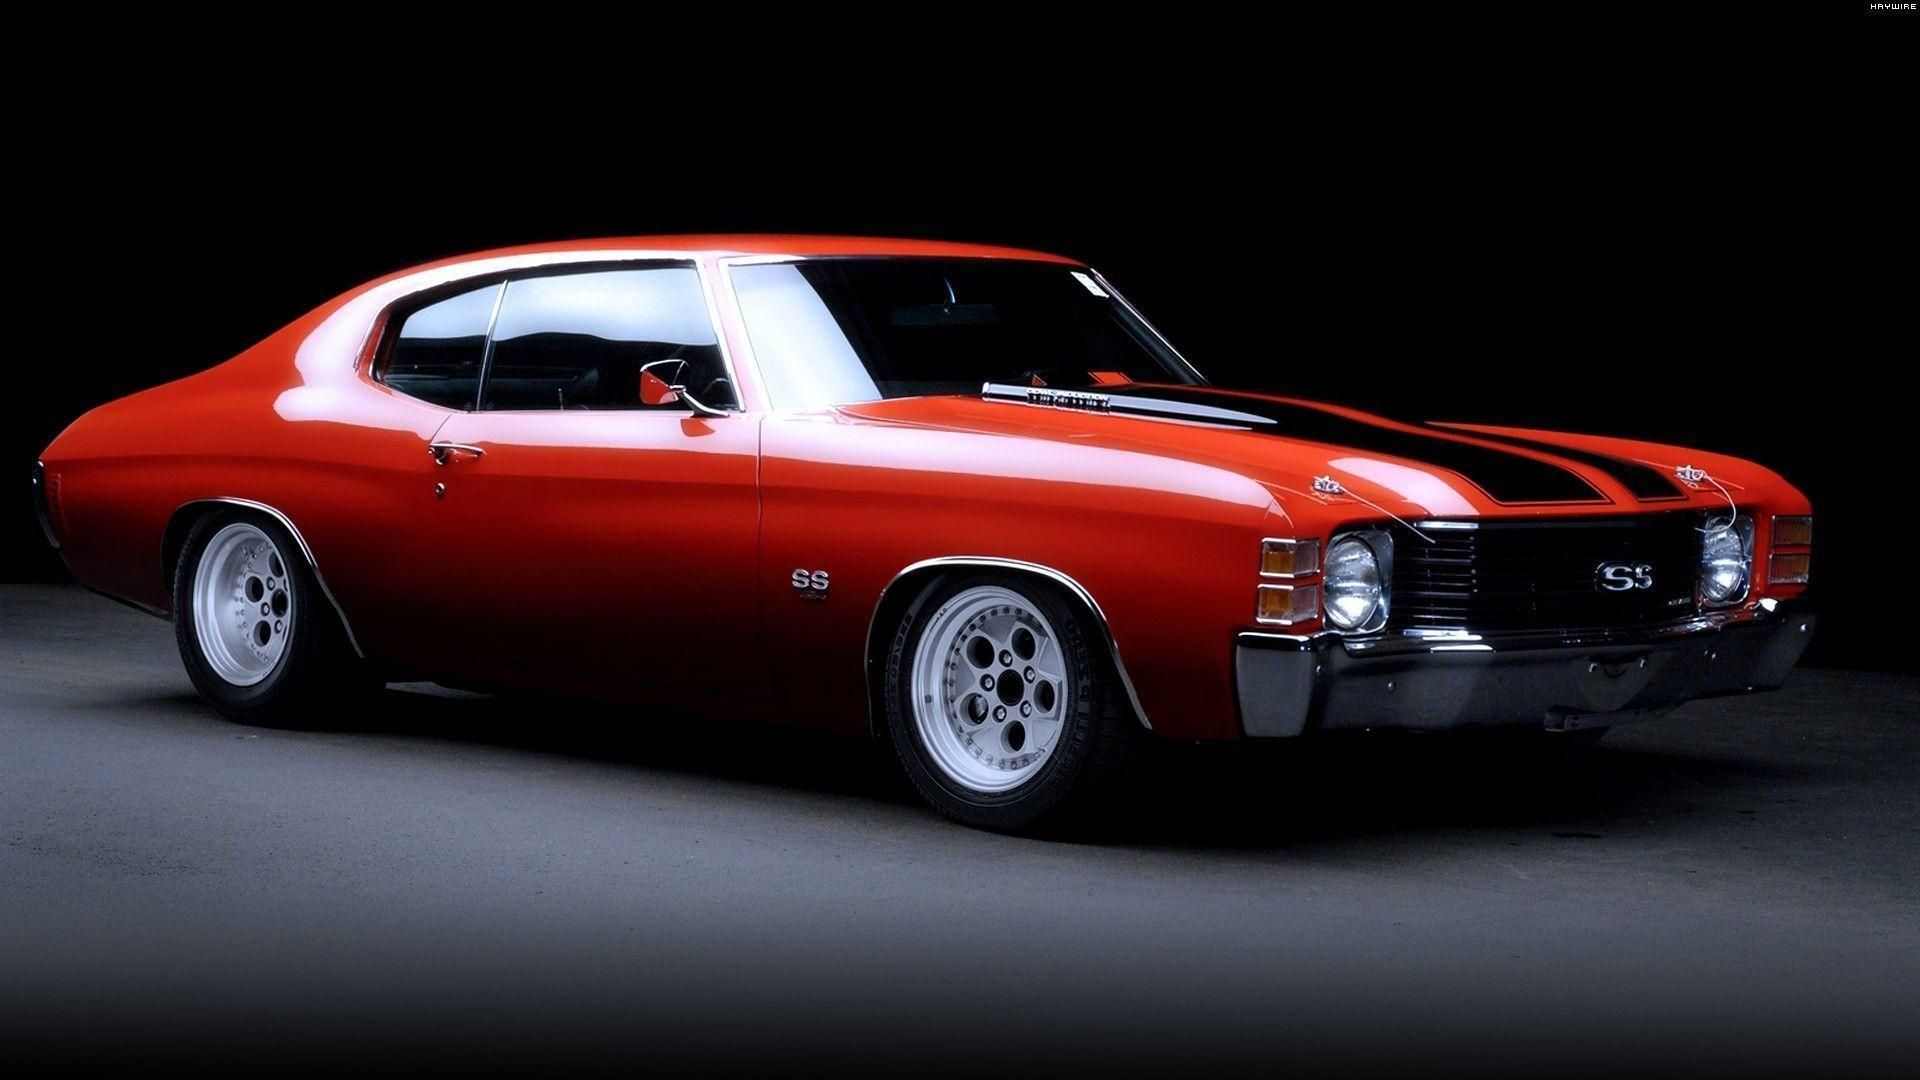 Cool Muscle Car Wallpapers Full Hd: Chevy Muscle Cars Cool HD Wallpapers Picture On ScreenCrot